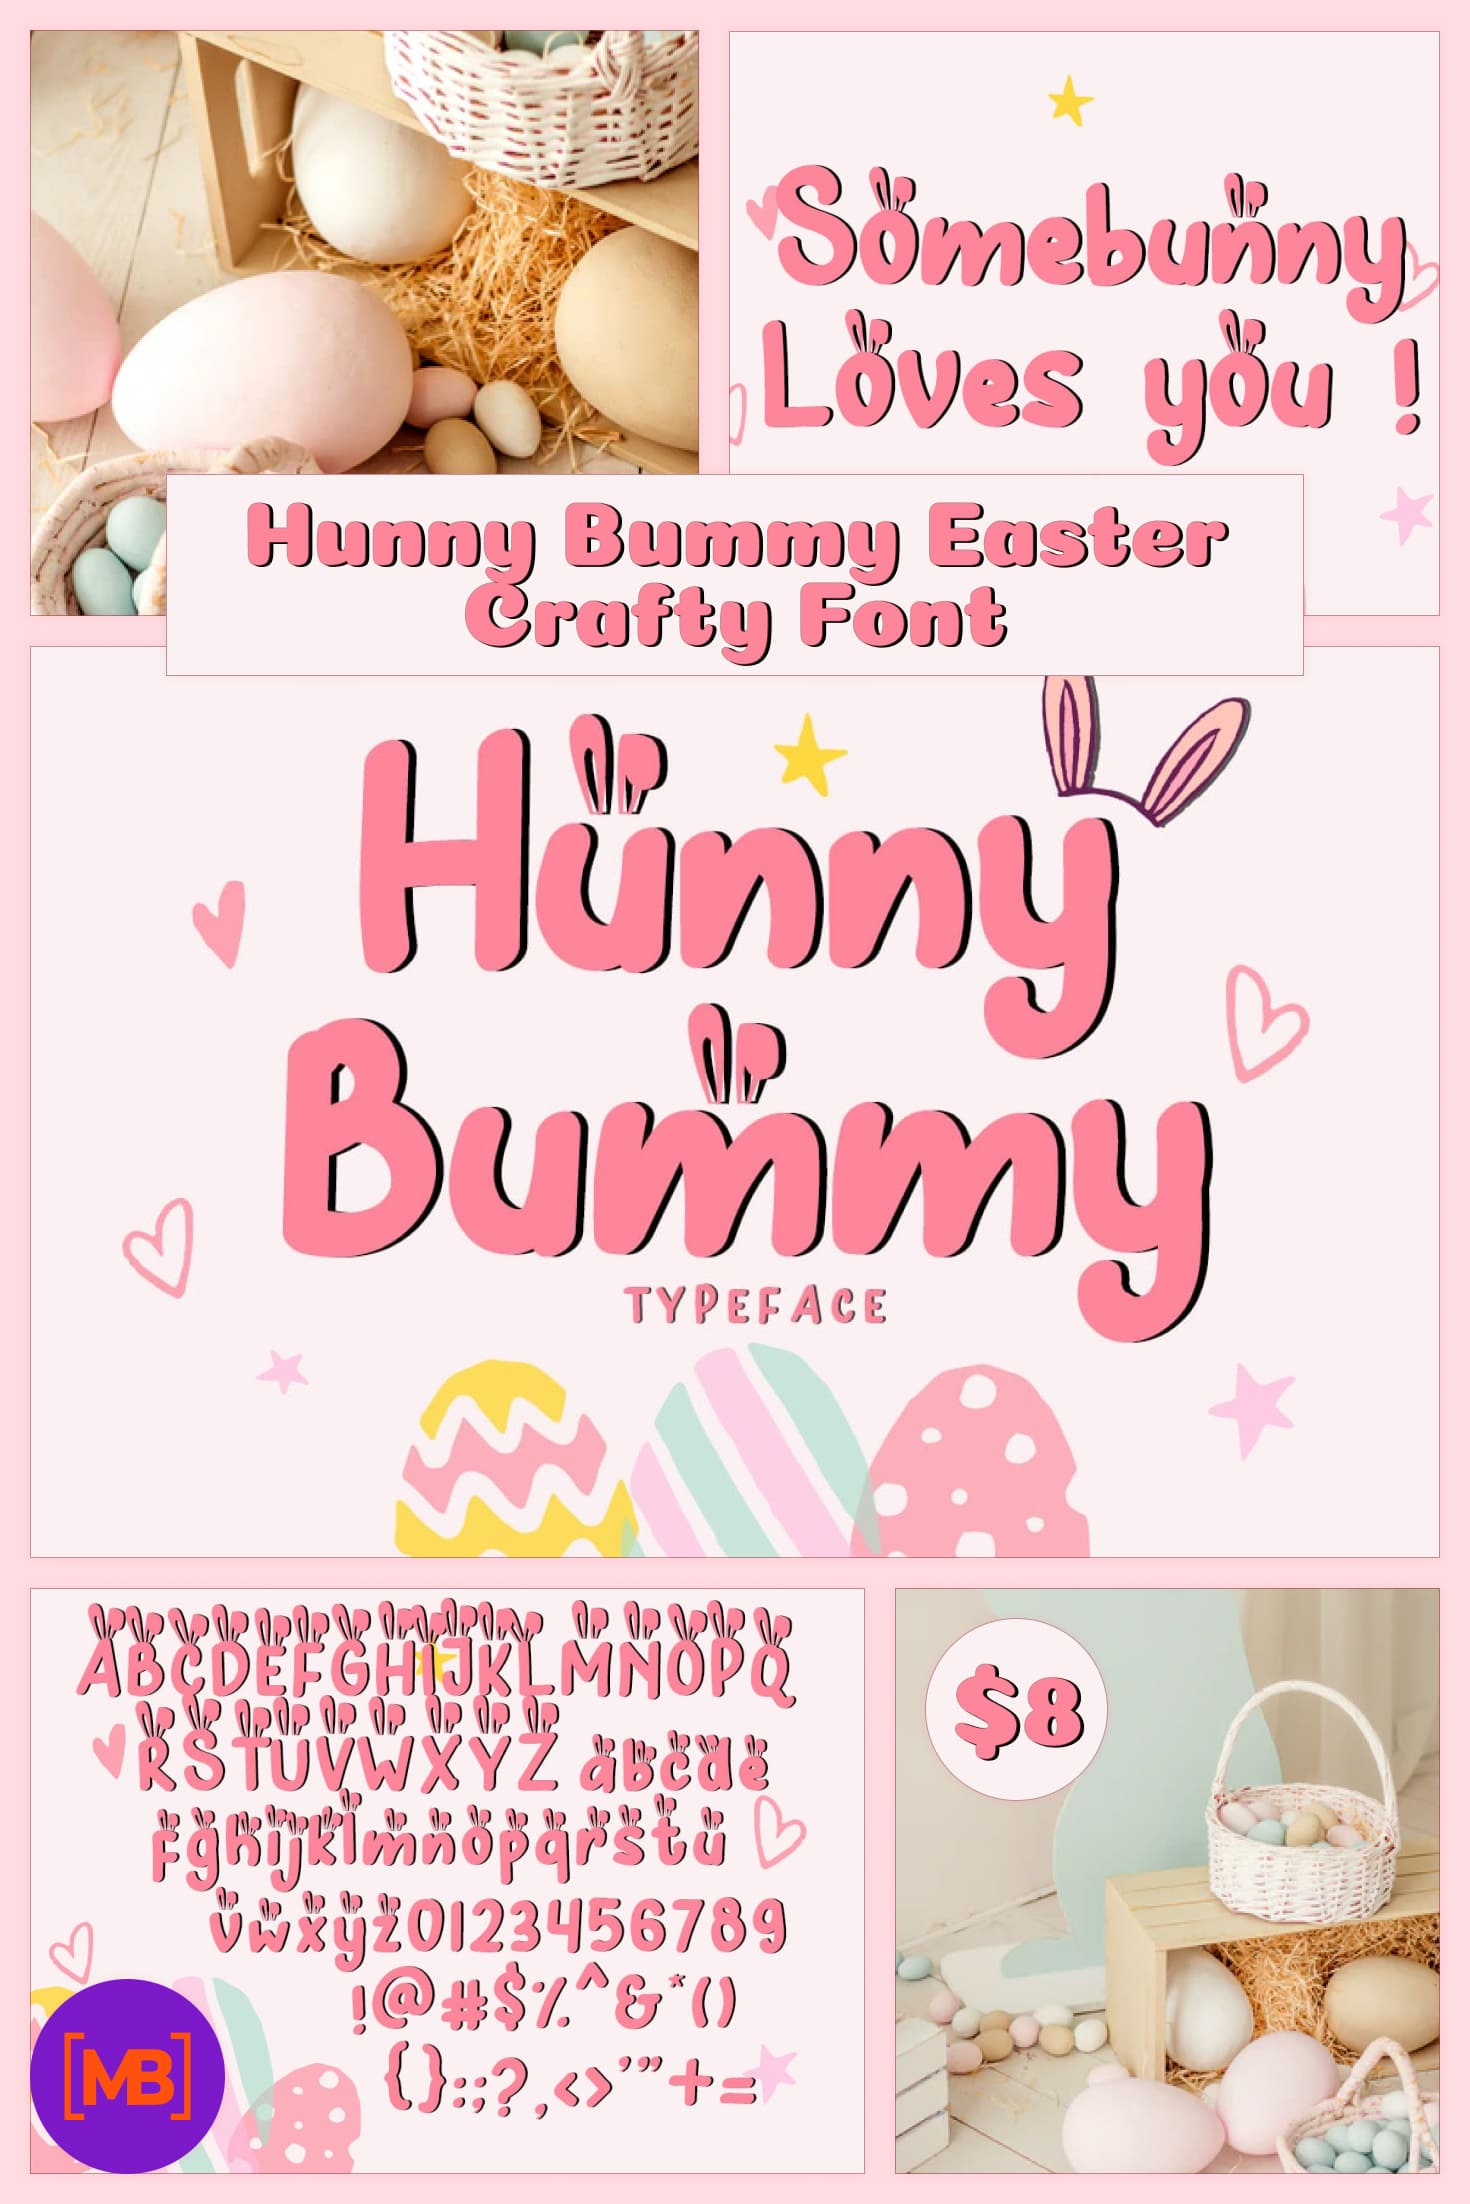 Hunny Bummy Easter Crafty Font - $8. Collage Image.